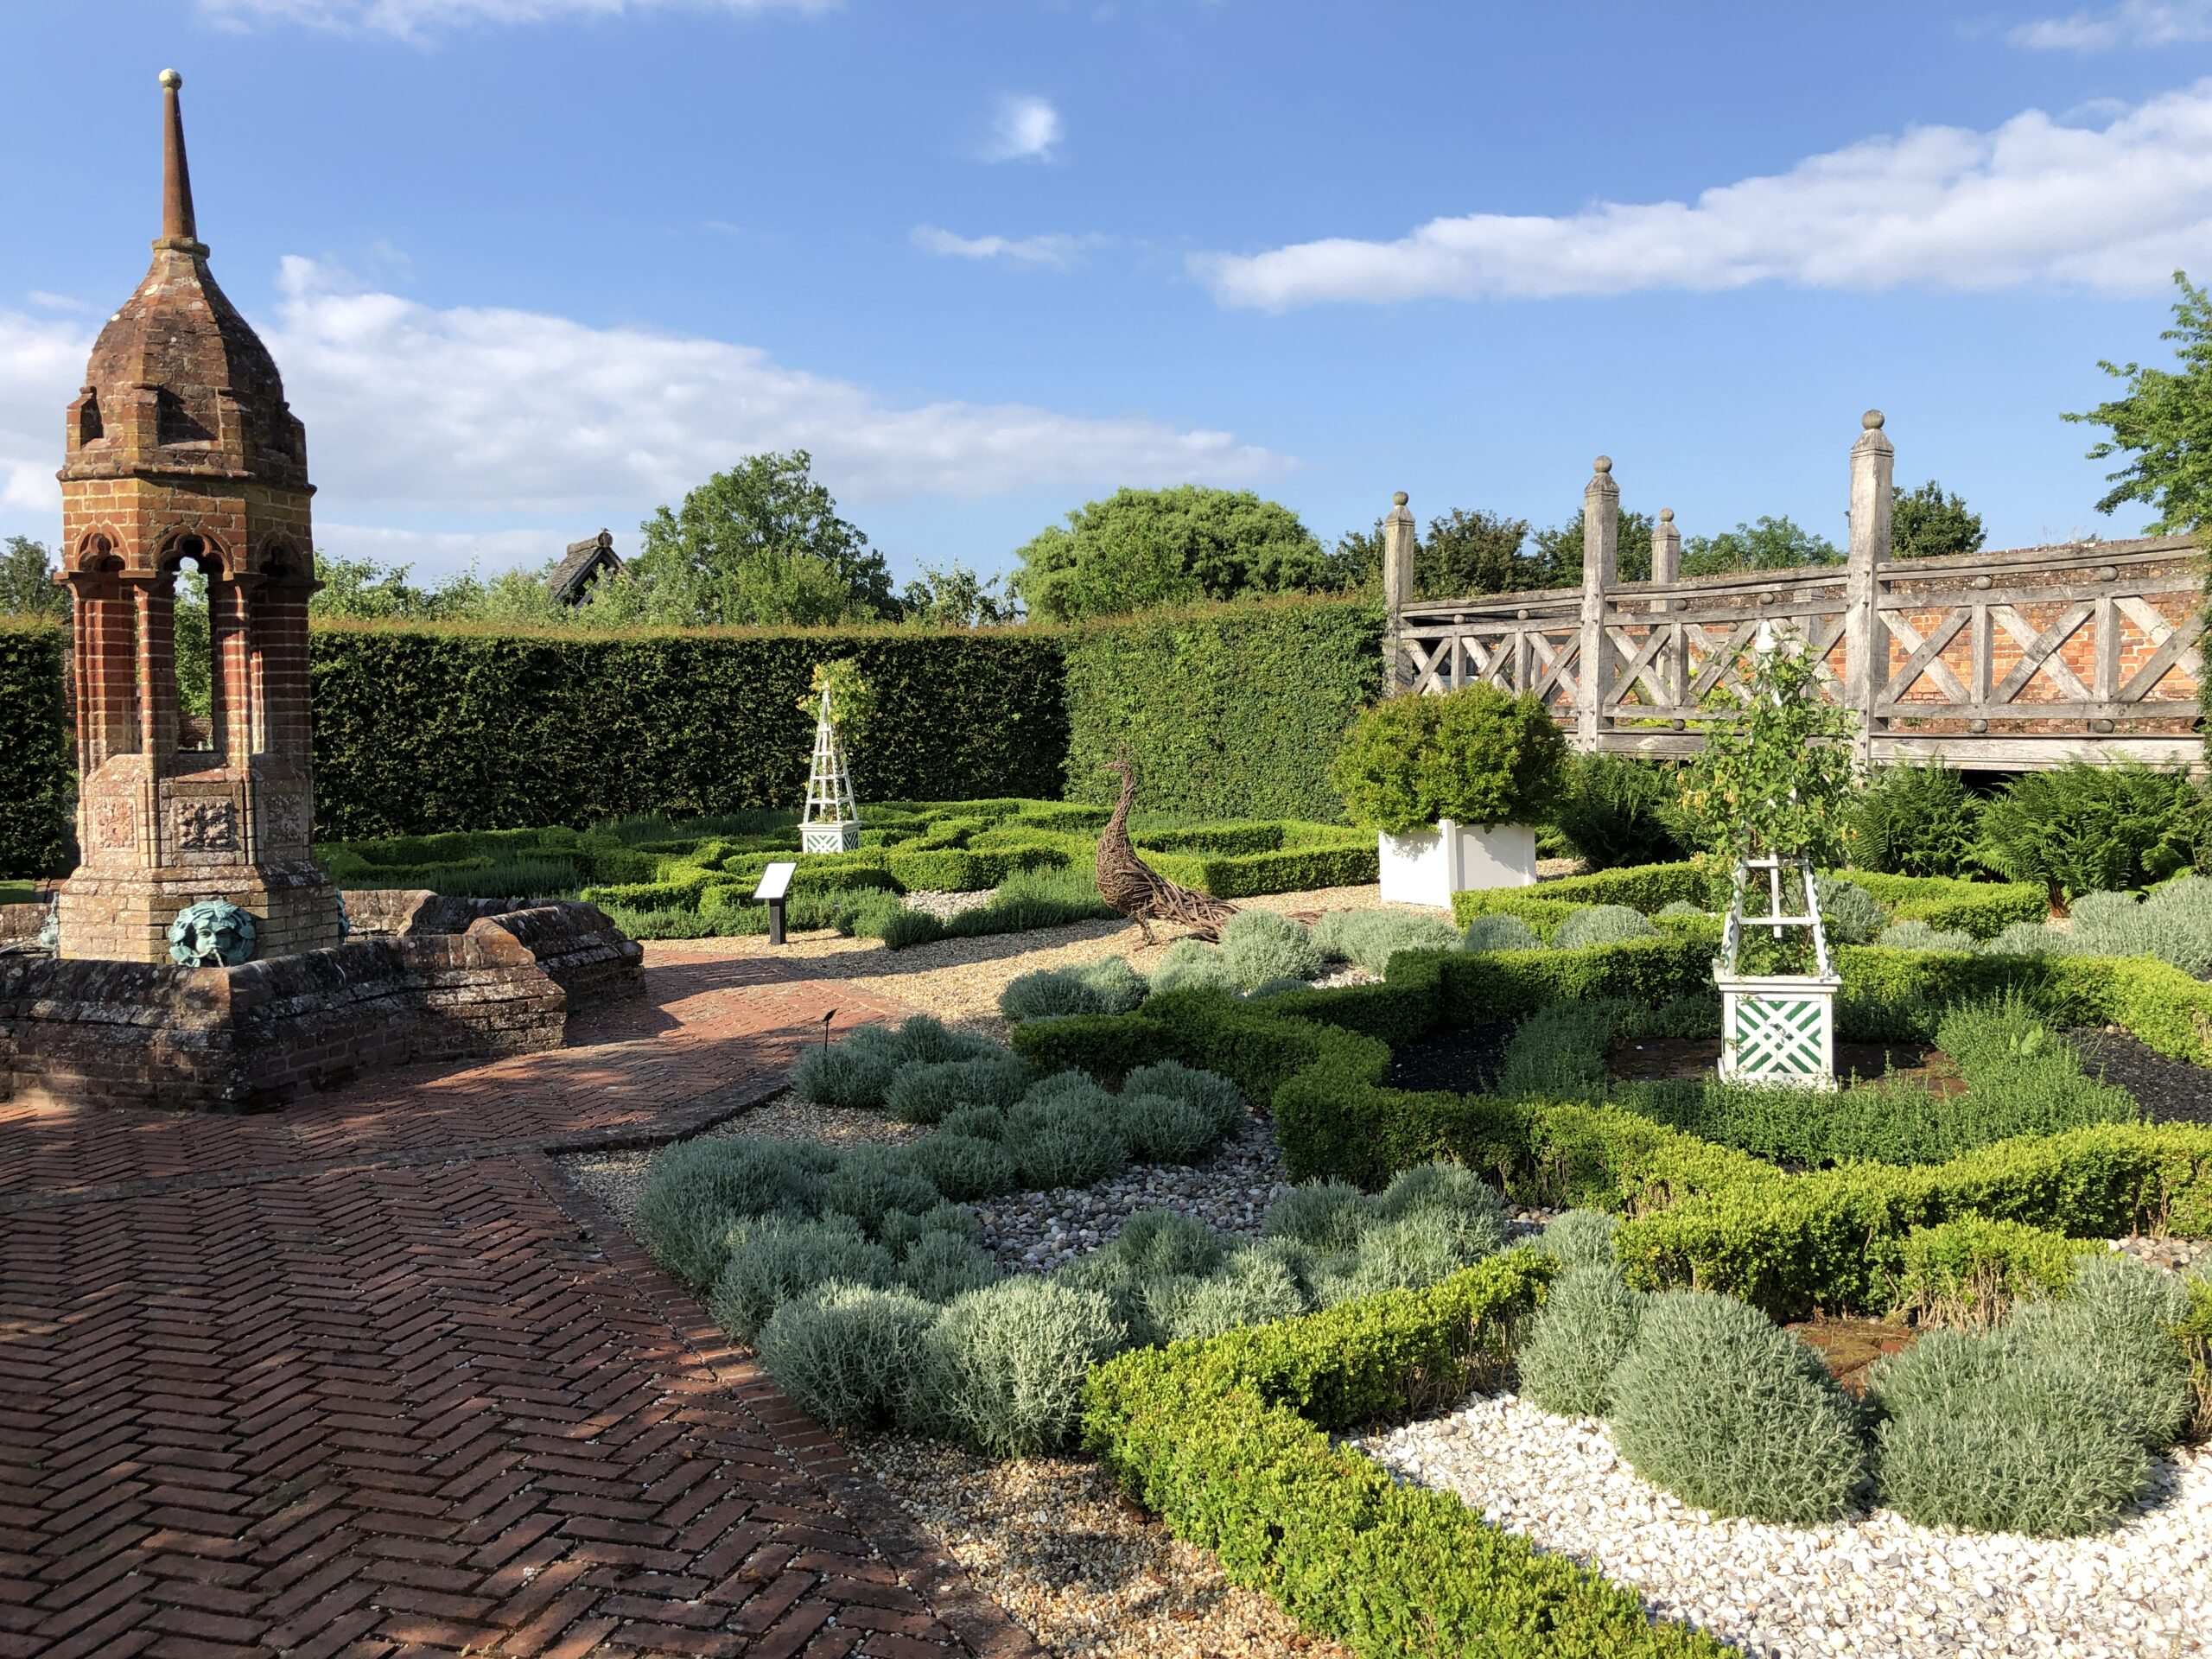 Knot garden at Cressing Temple